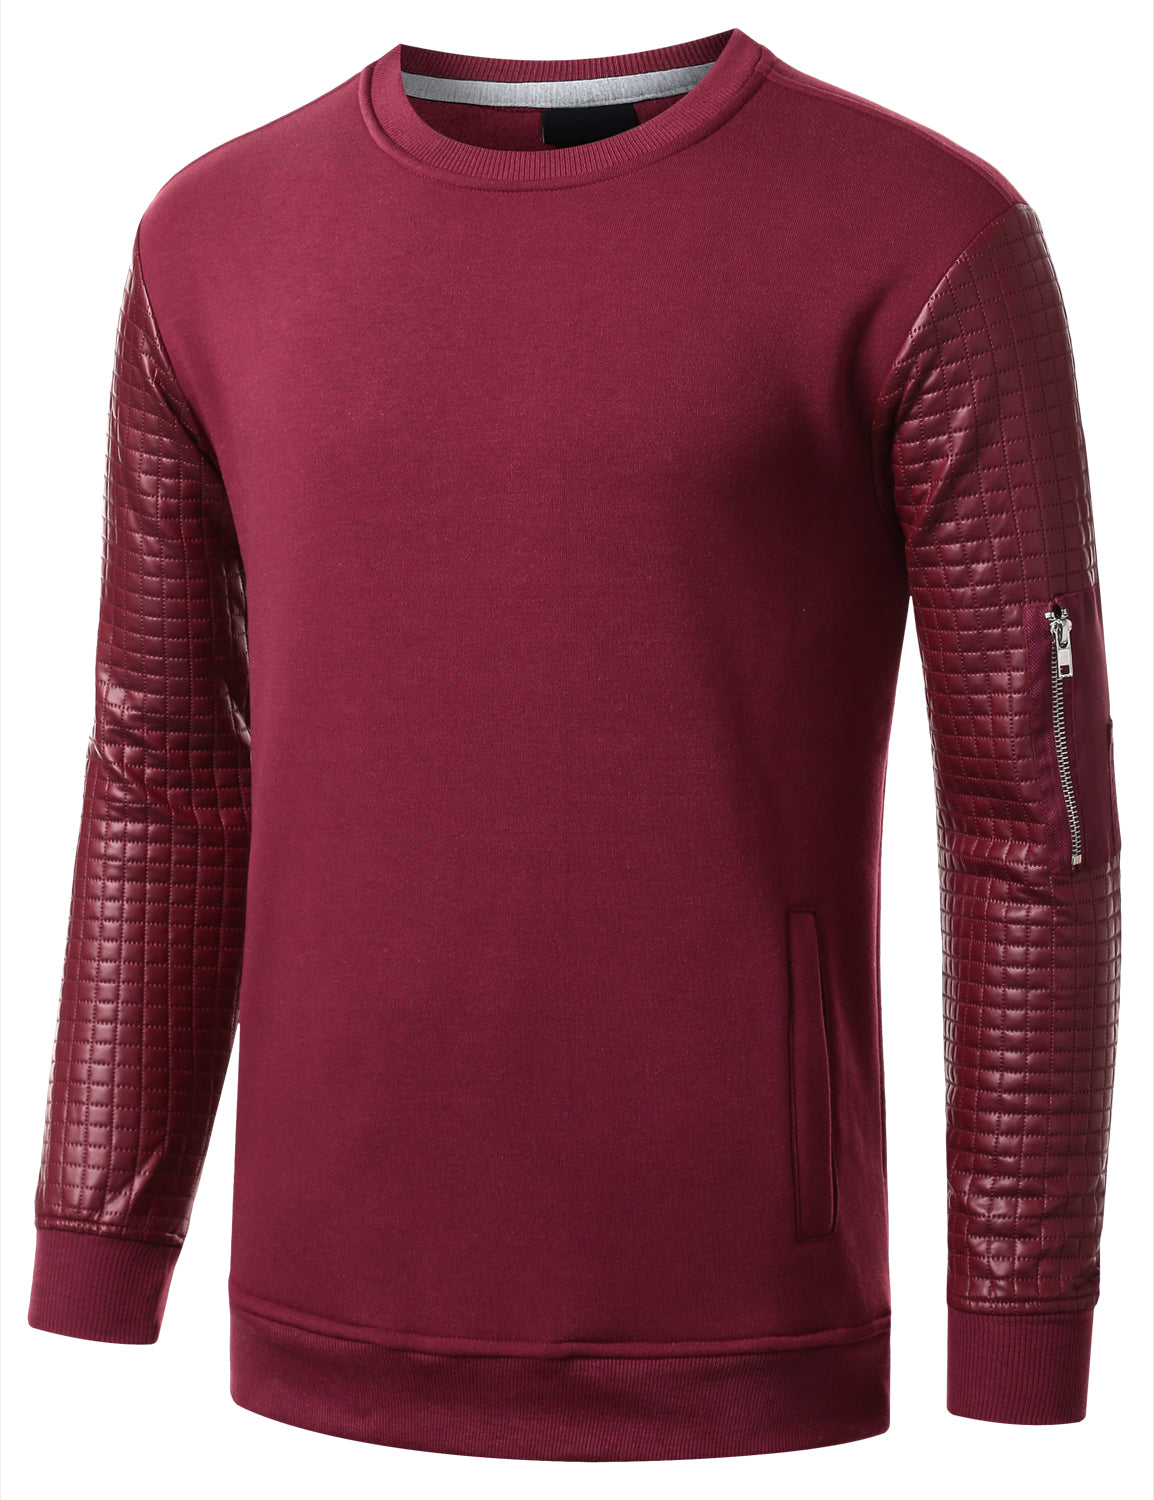 BURGUNDY - Quilted PU Sleeves Sweatshirt BURGUNDY MEDIUM